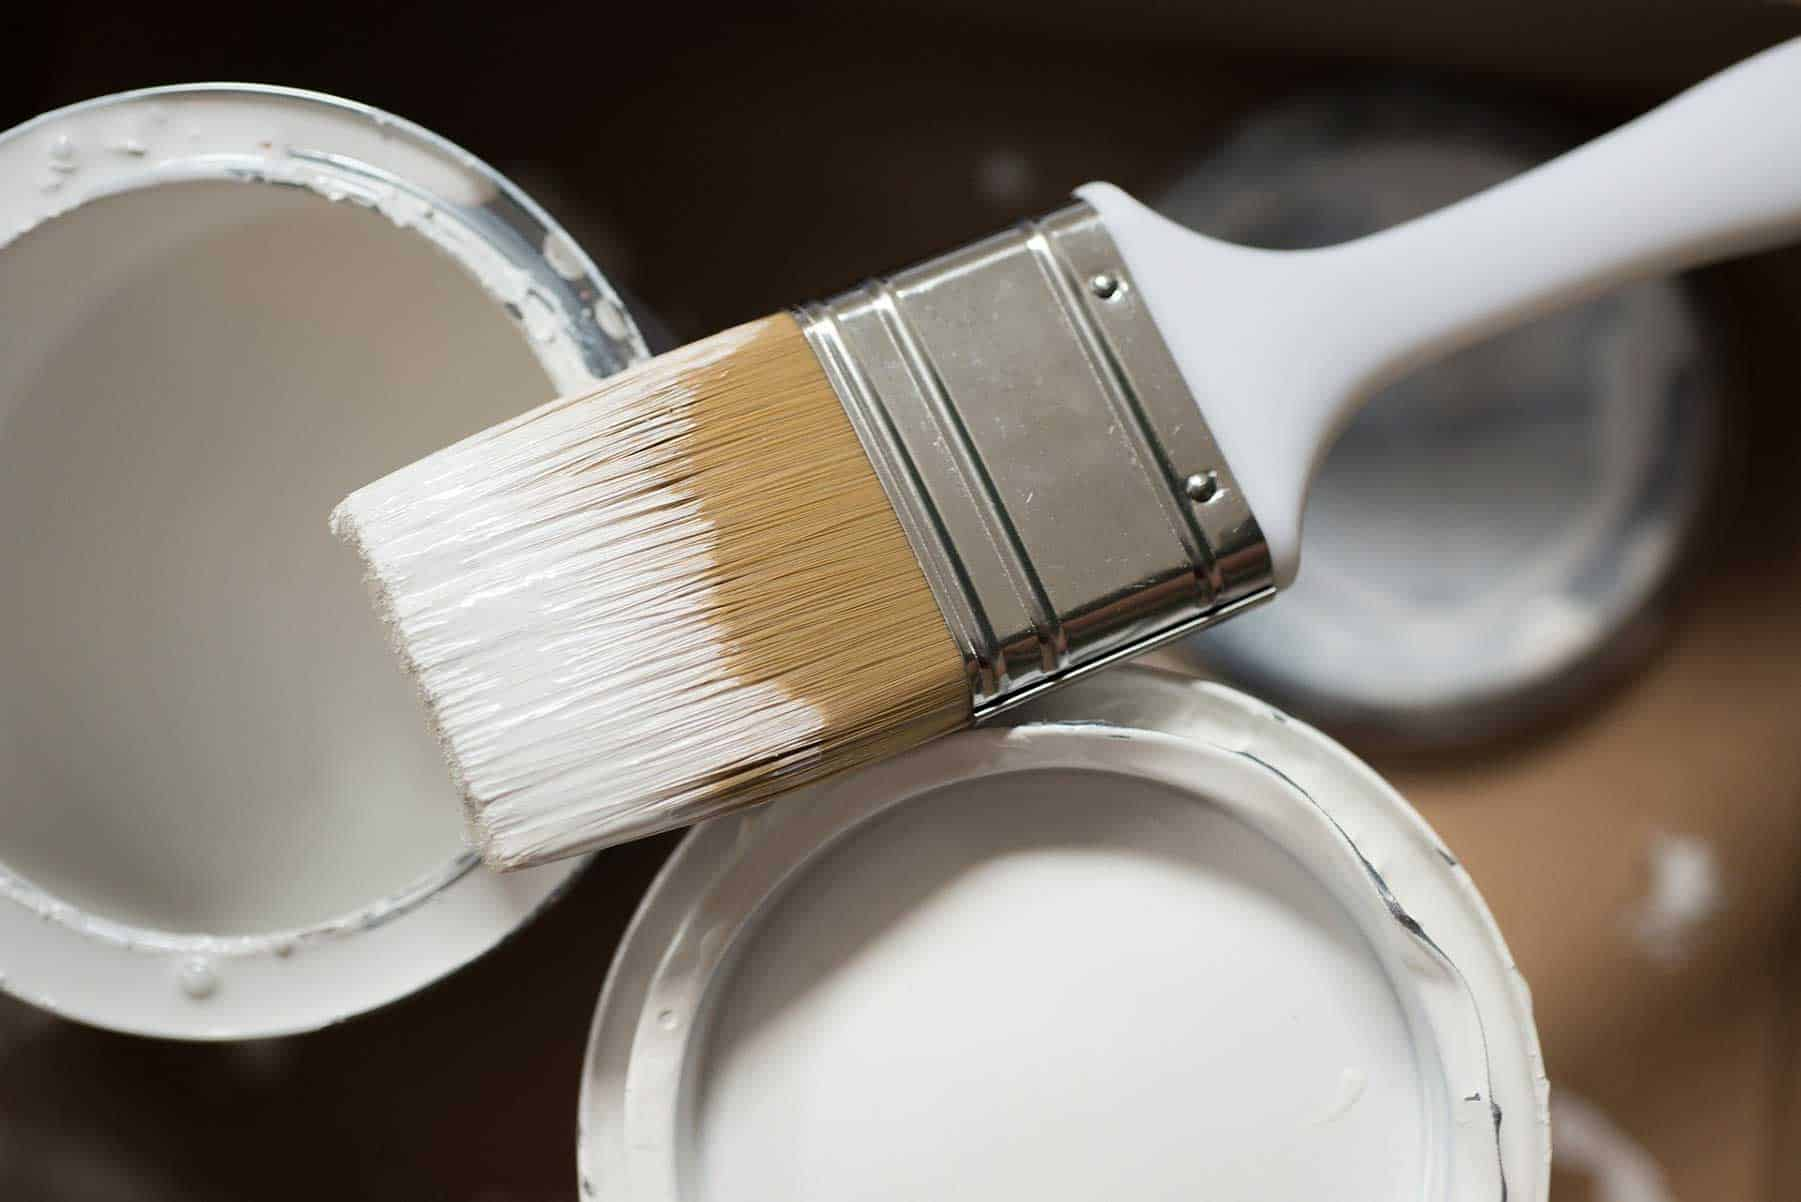 How to Start a Painting Business - Brushes